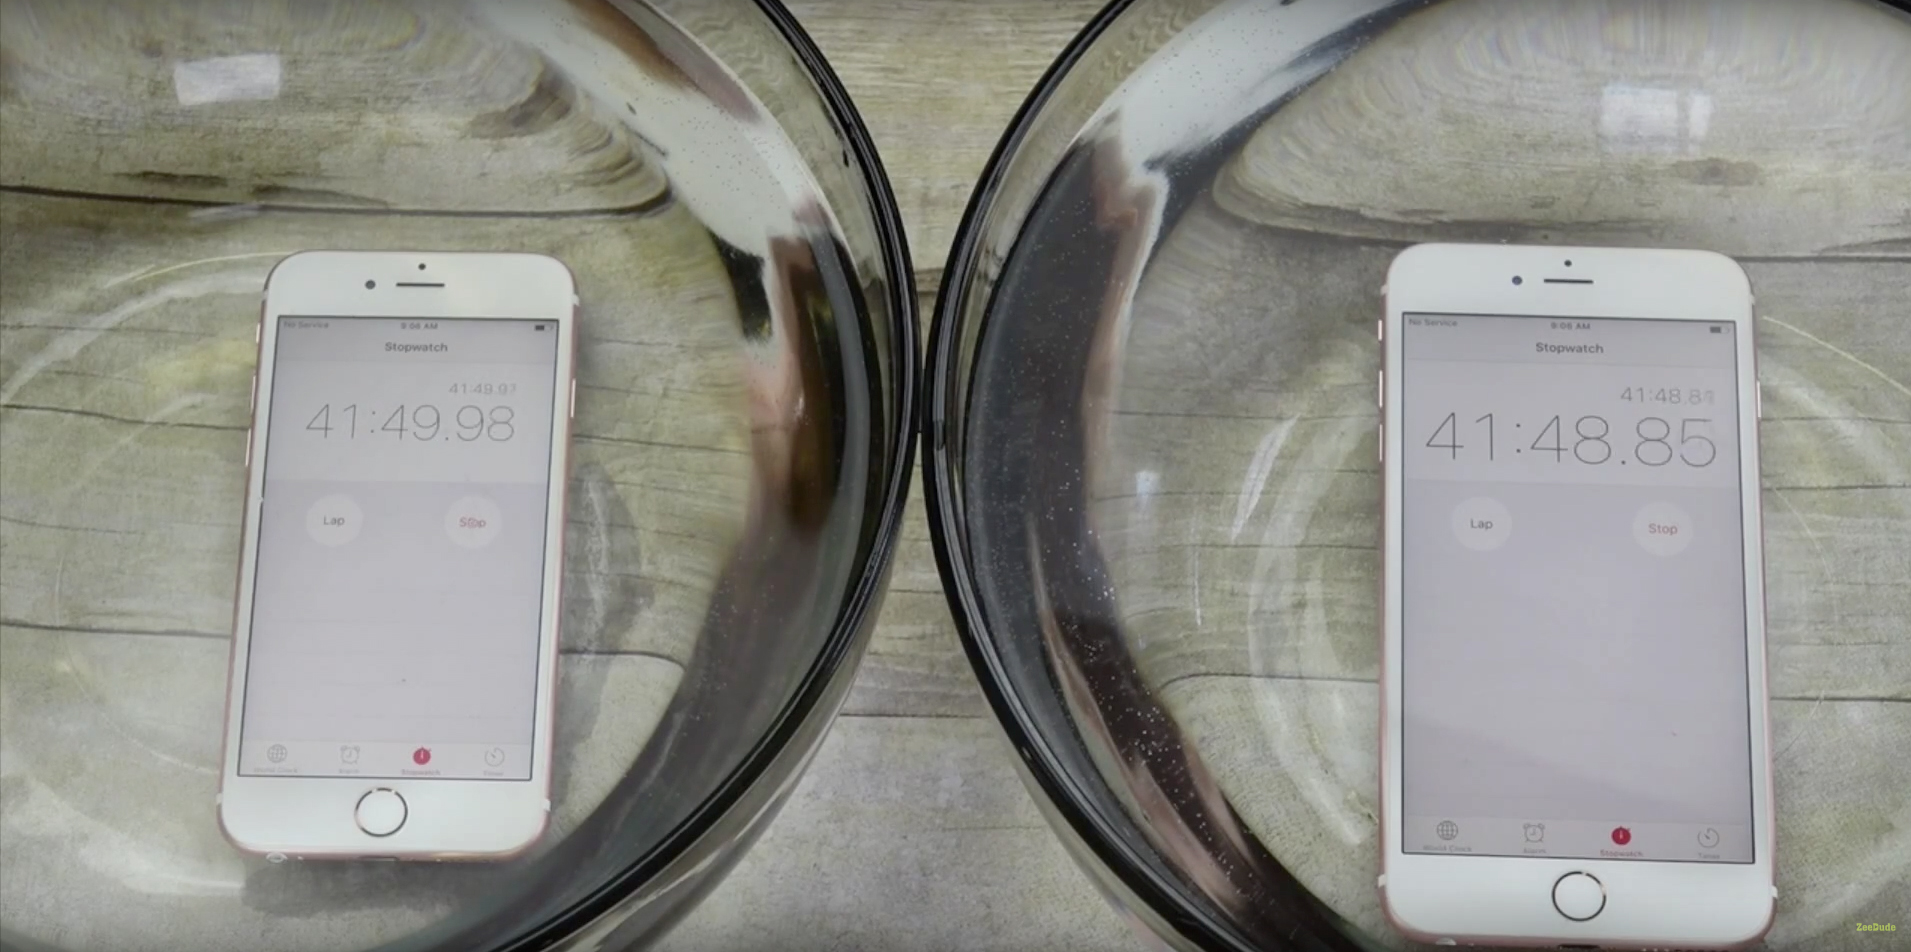 The iPhone 6s and iPhone 6s Plus are far from waterproof